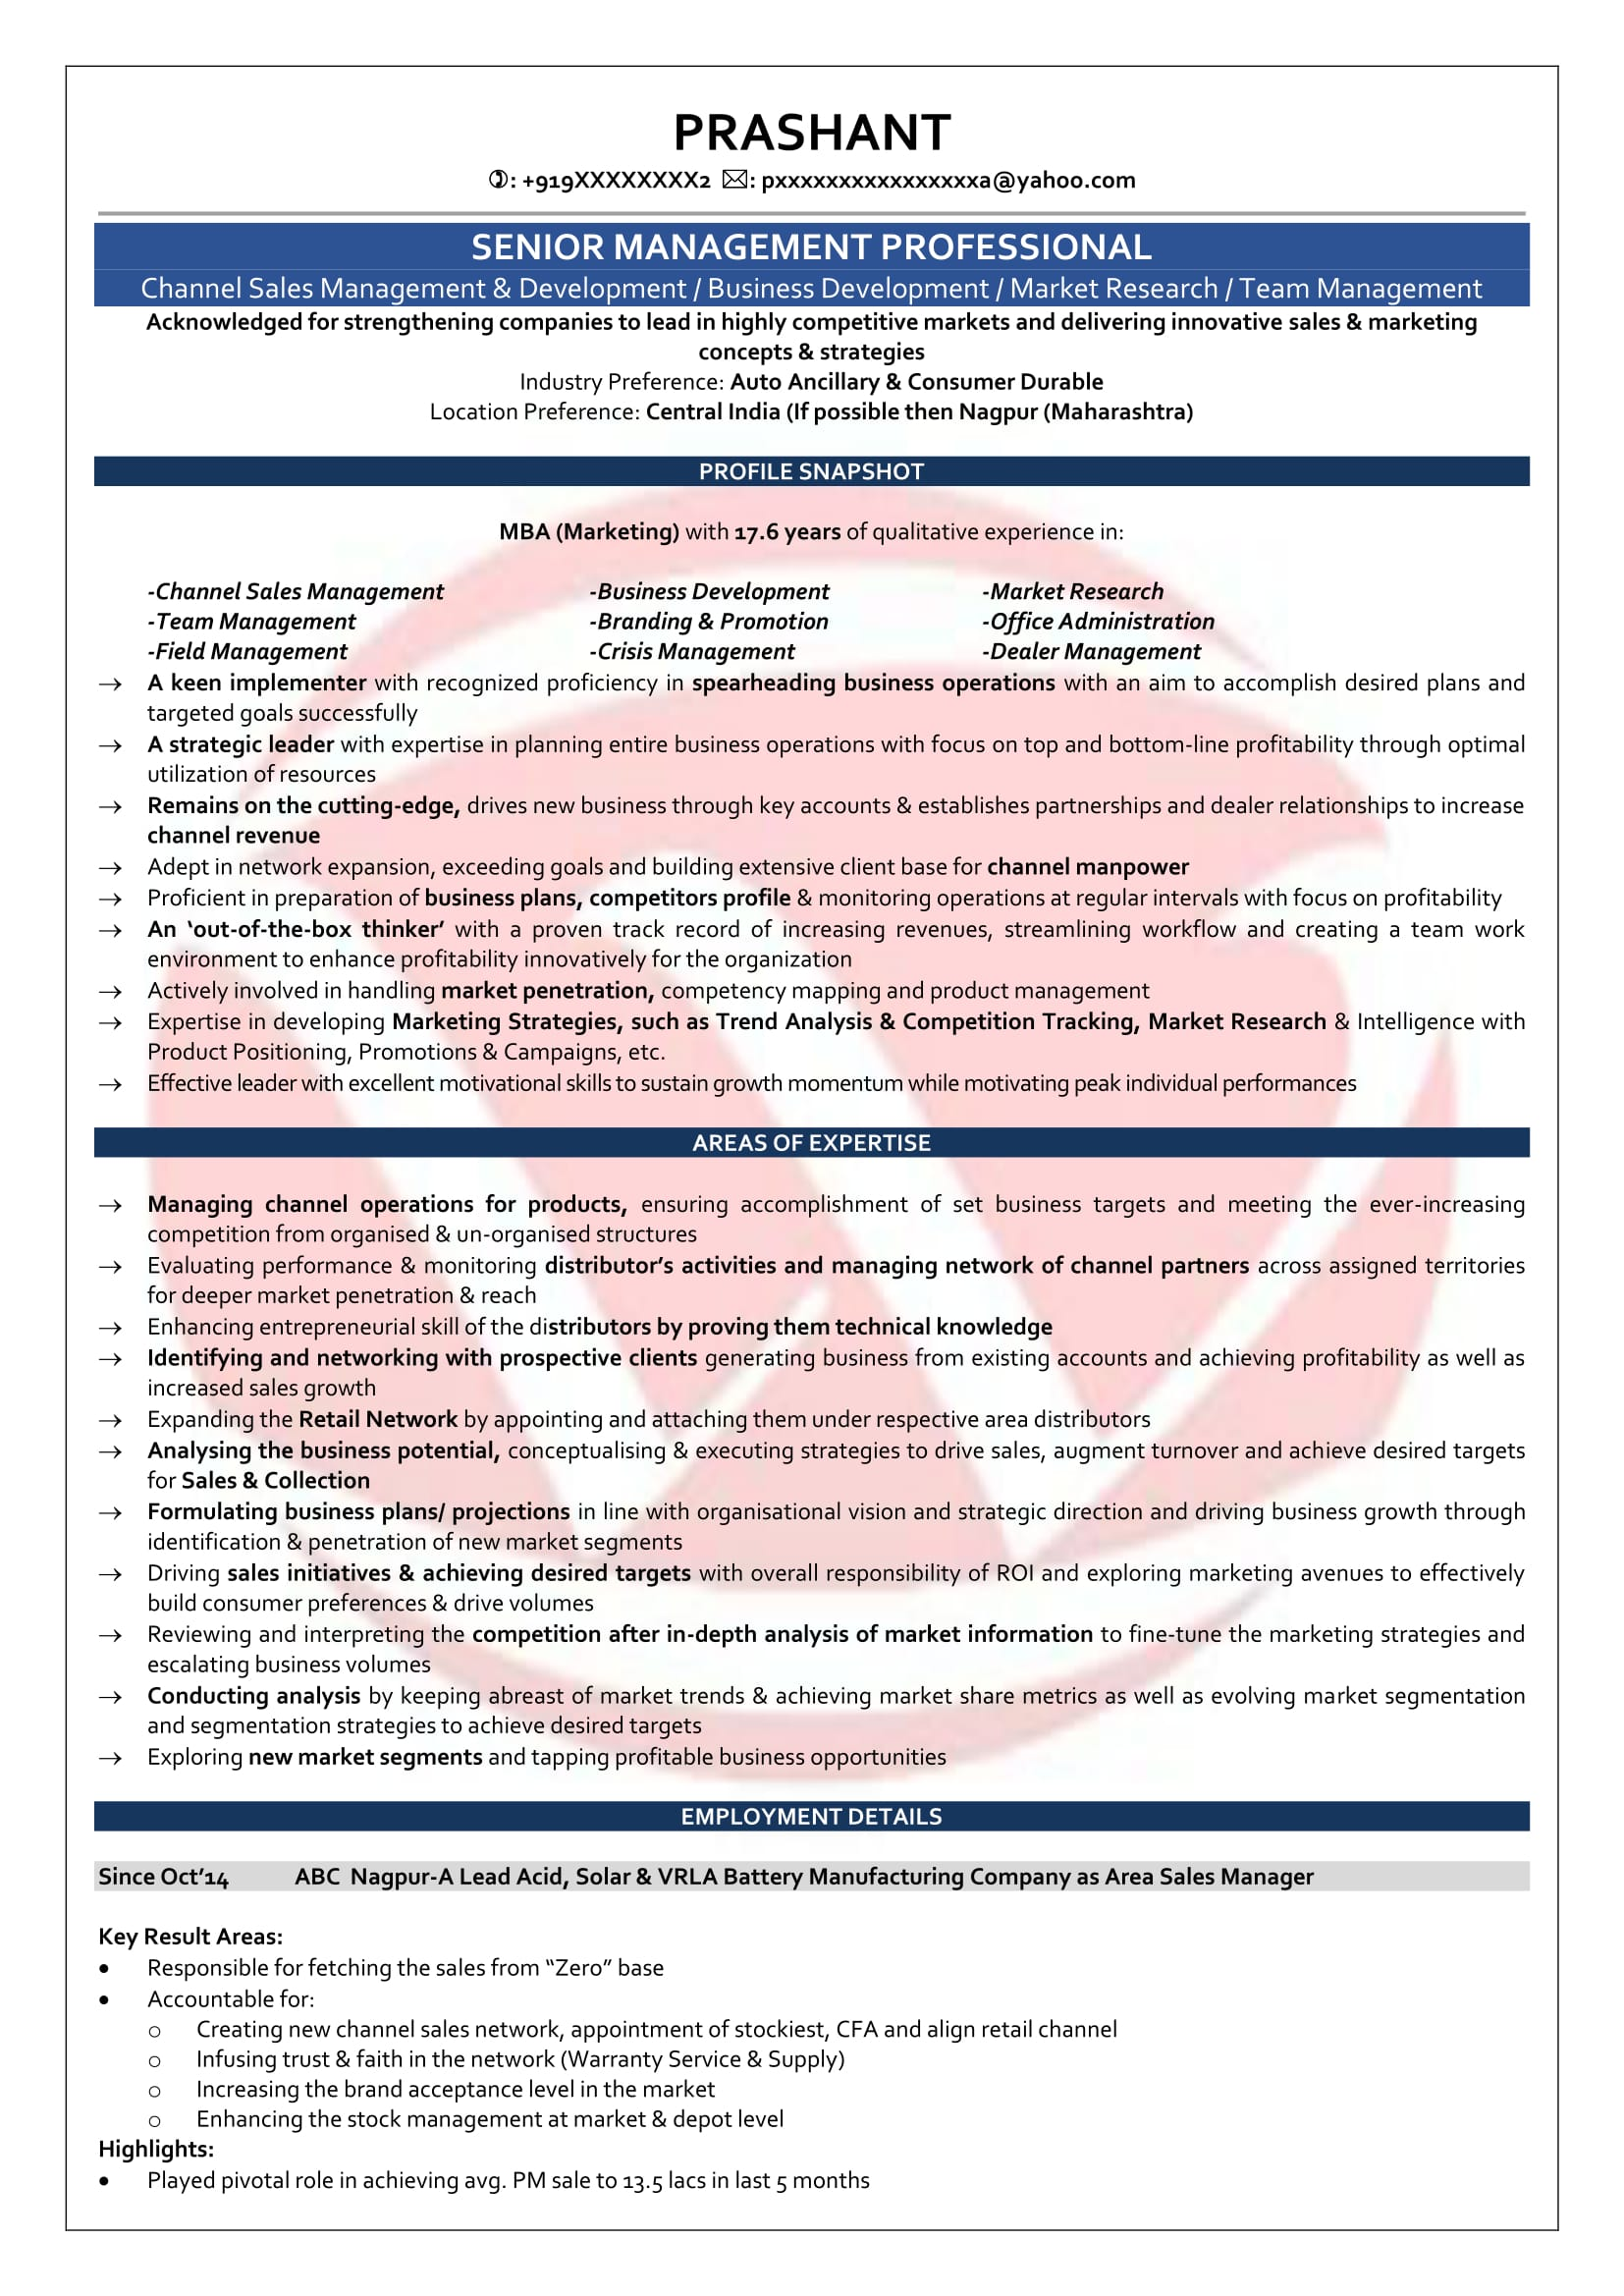 area manager sample resumes resume format templates for cts company customer service Resume Resume Format For Cts Company